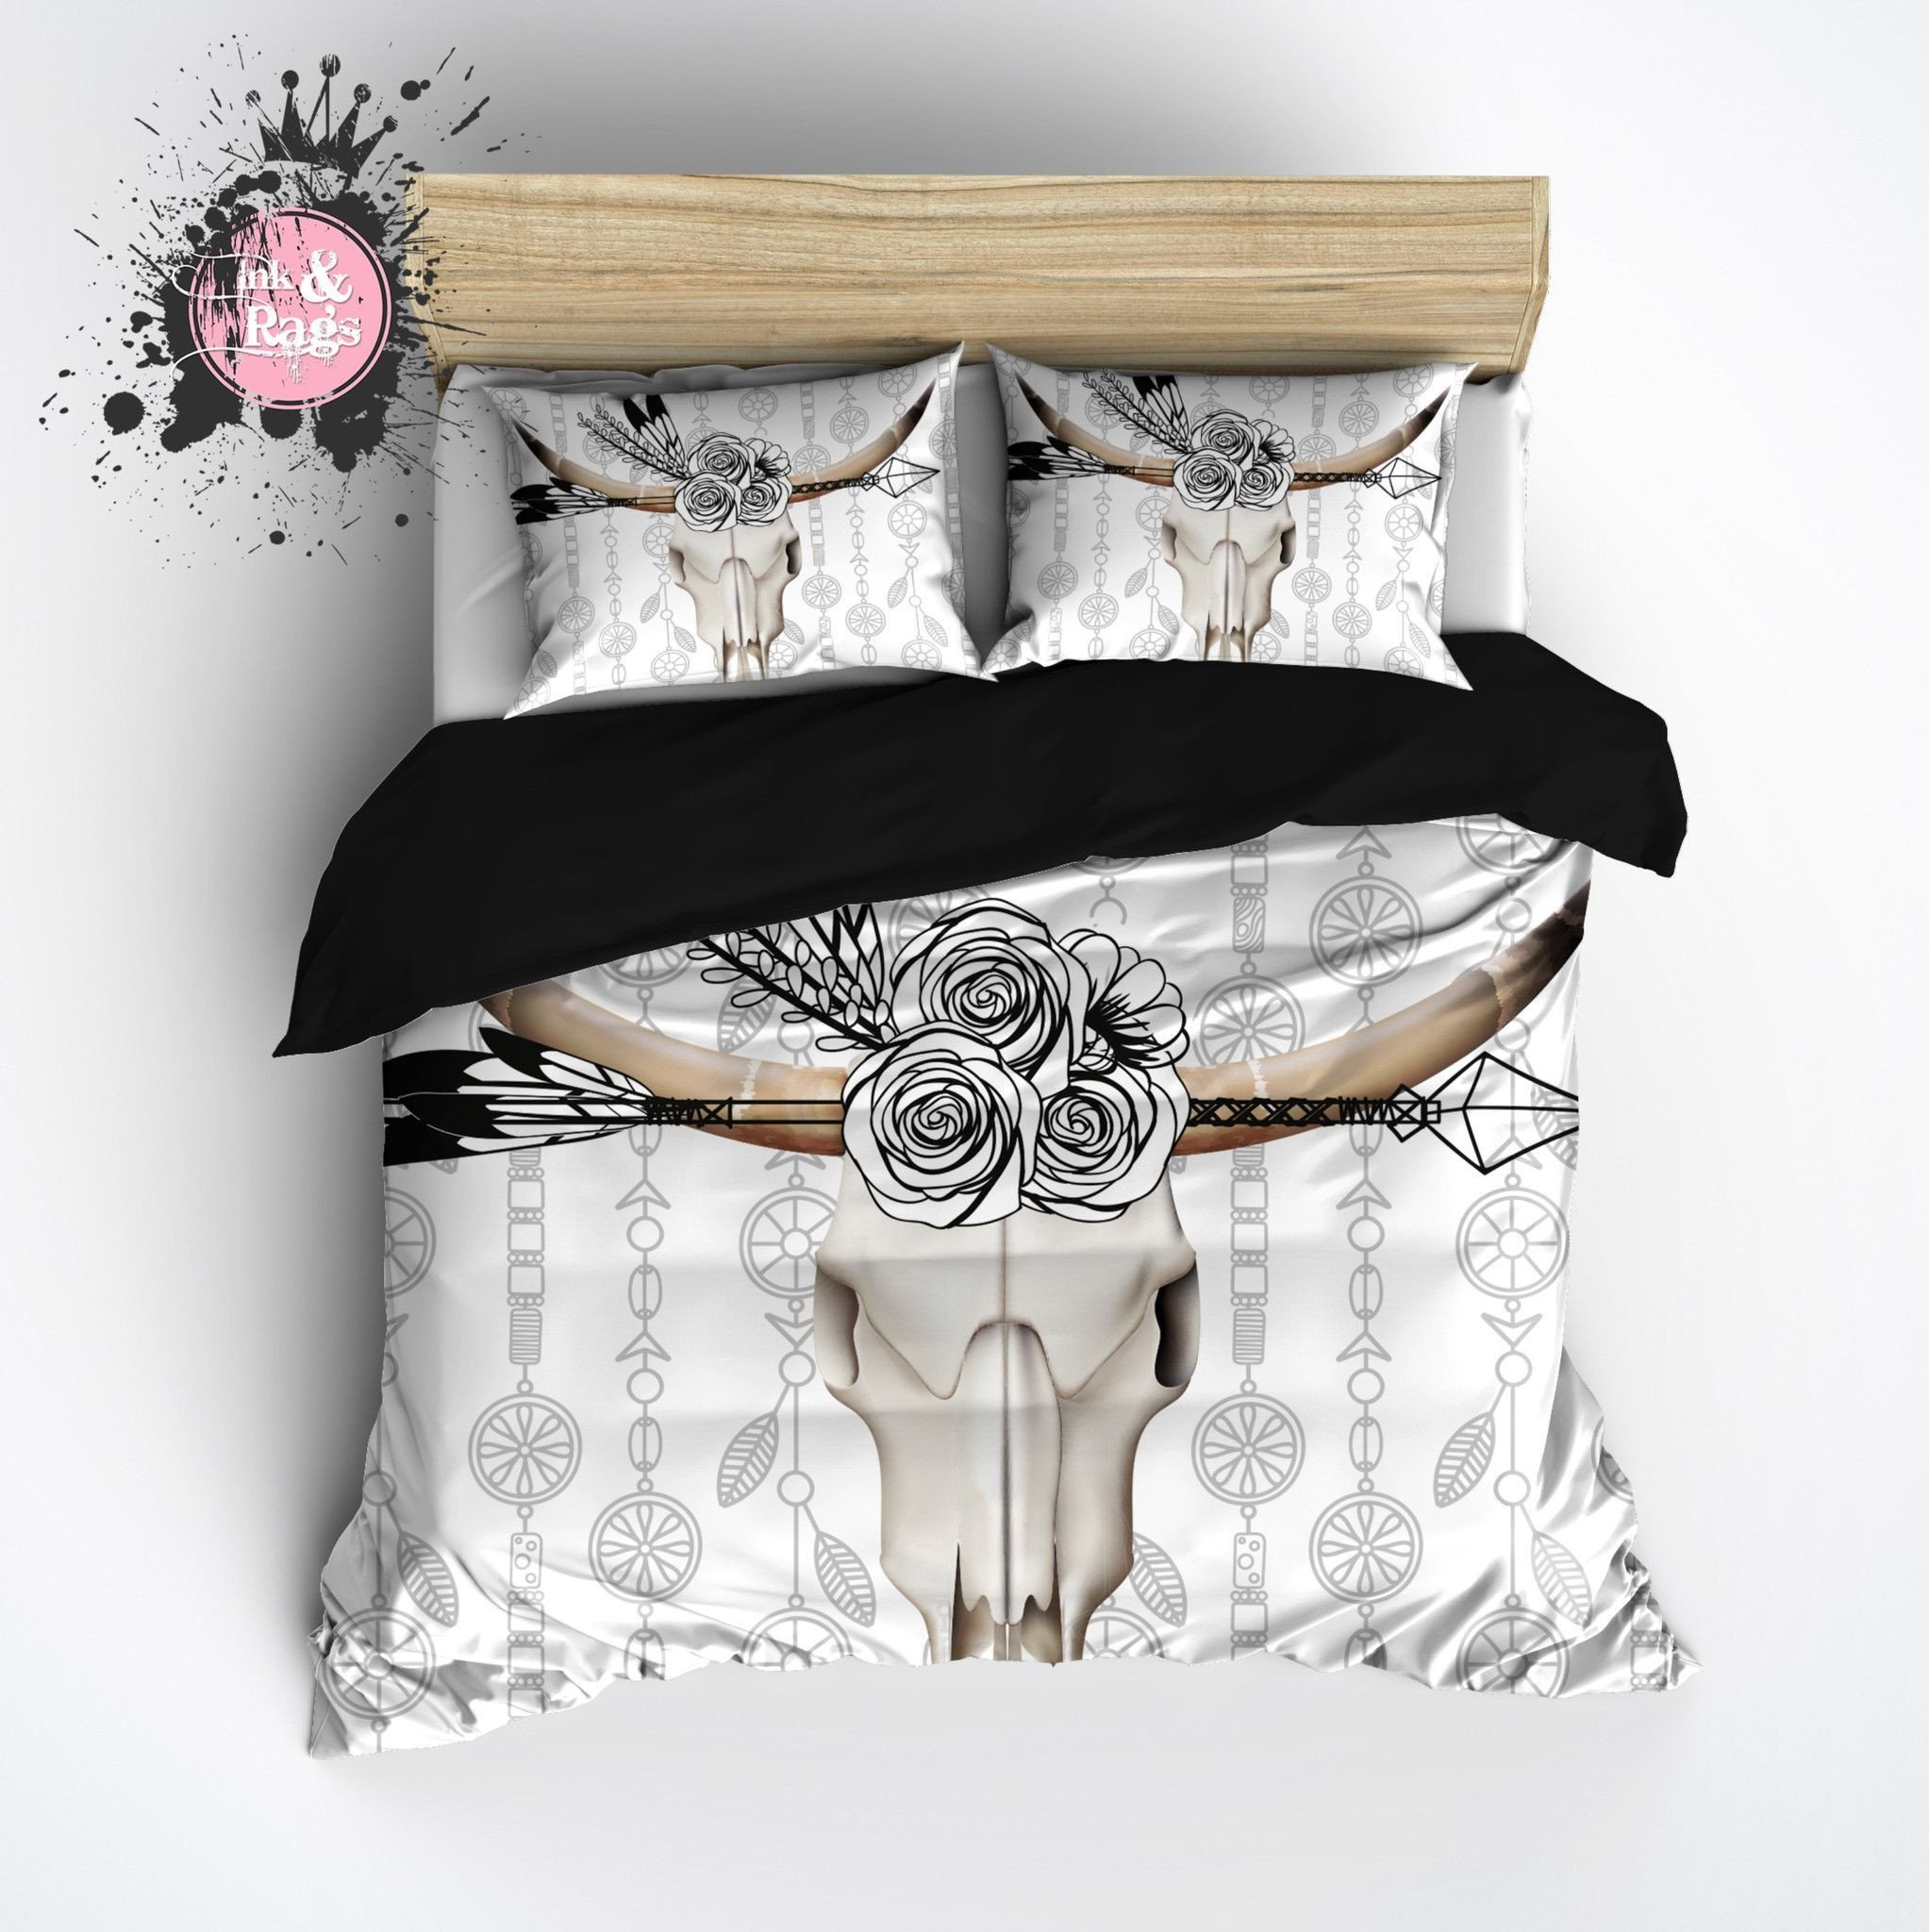 Bedroom Bedding and Curtain Set Beautiful Boho Bull Skull Flower and Feather Bedding